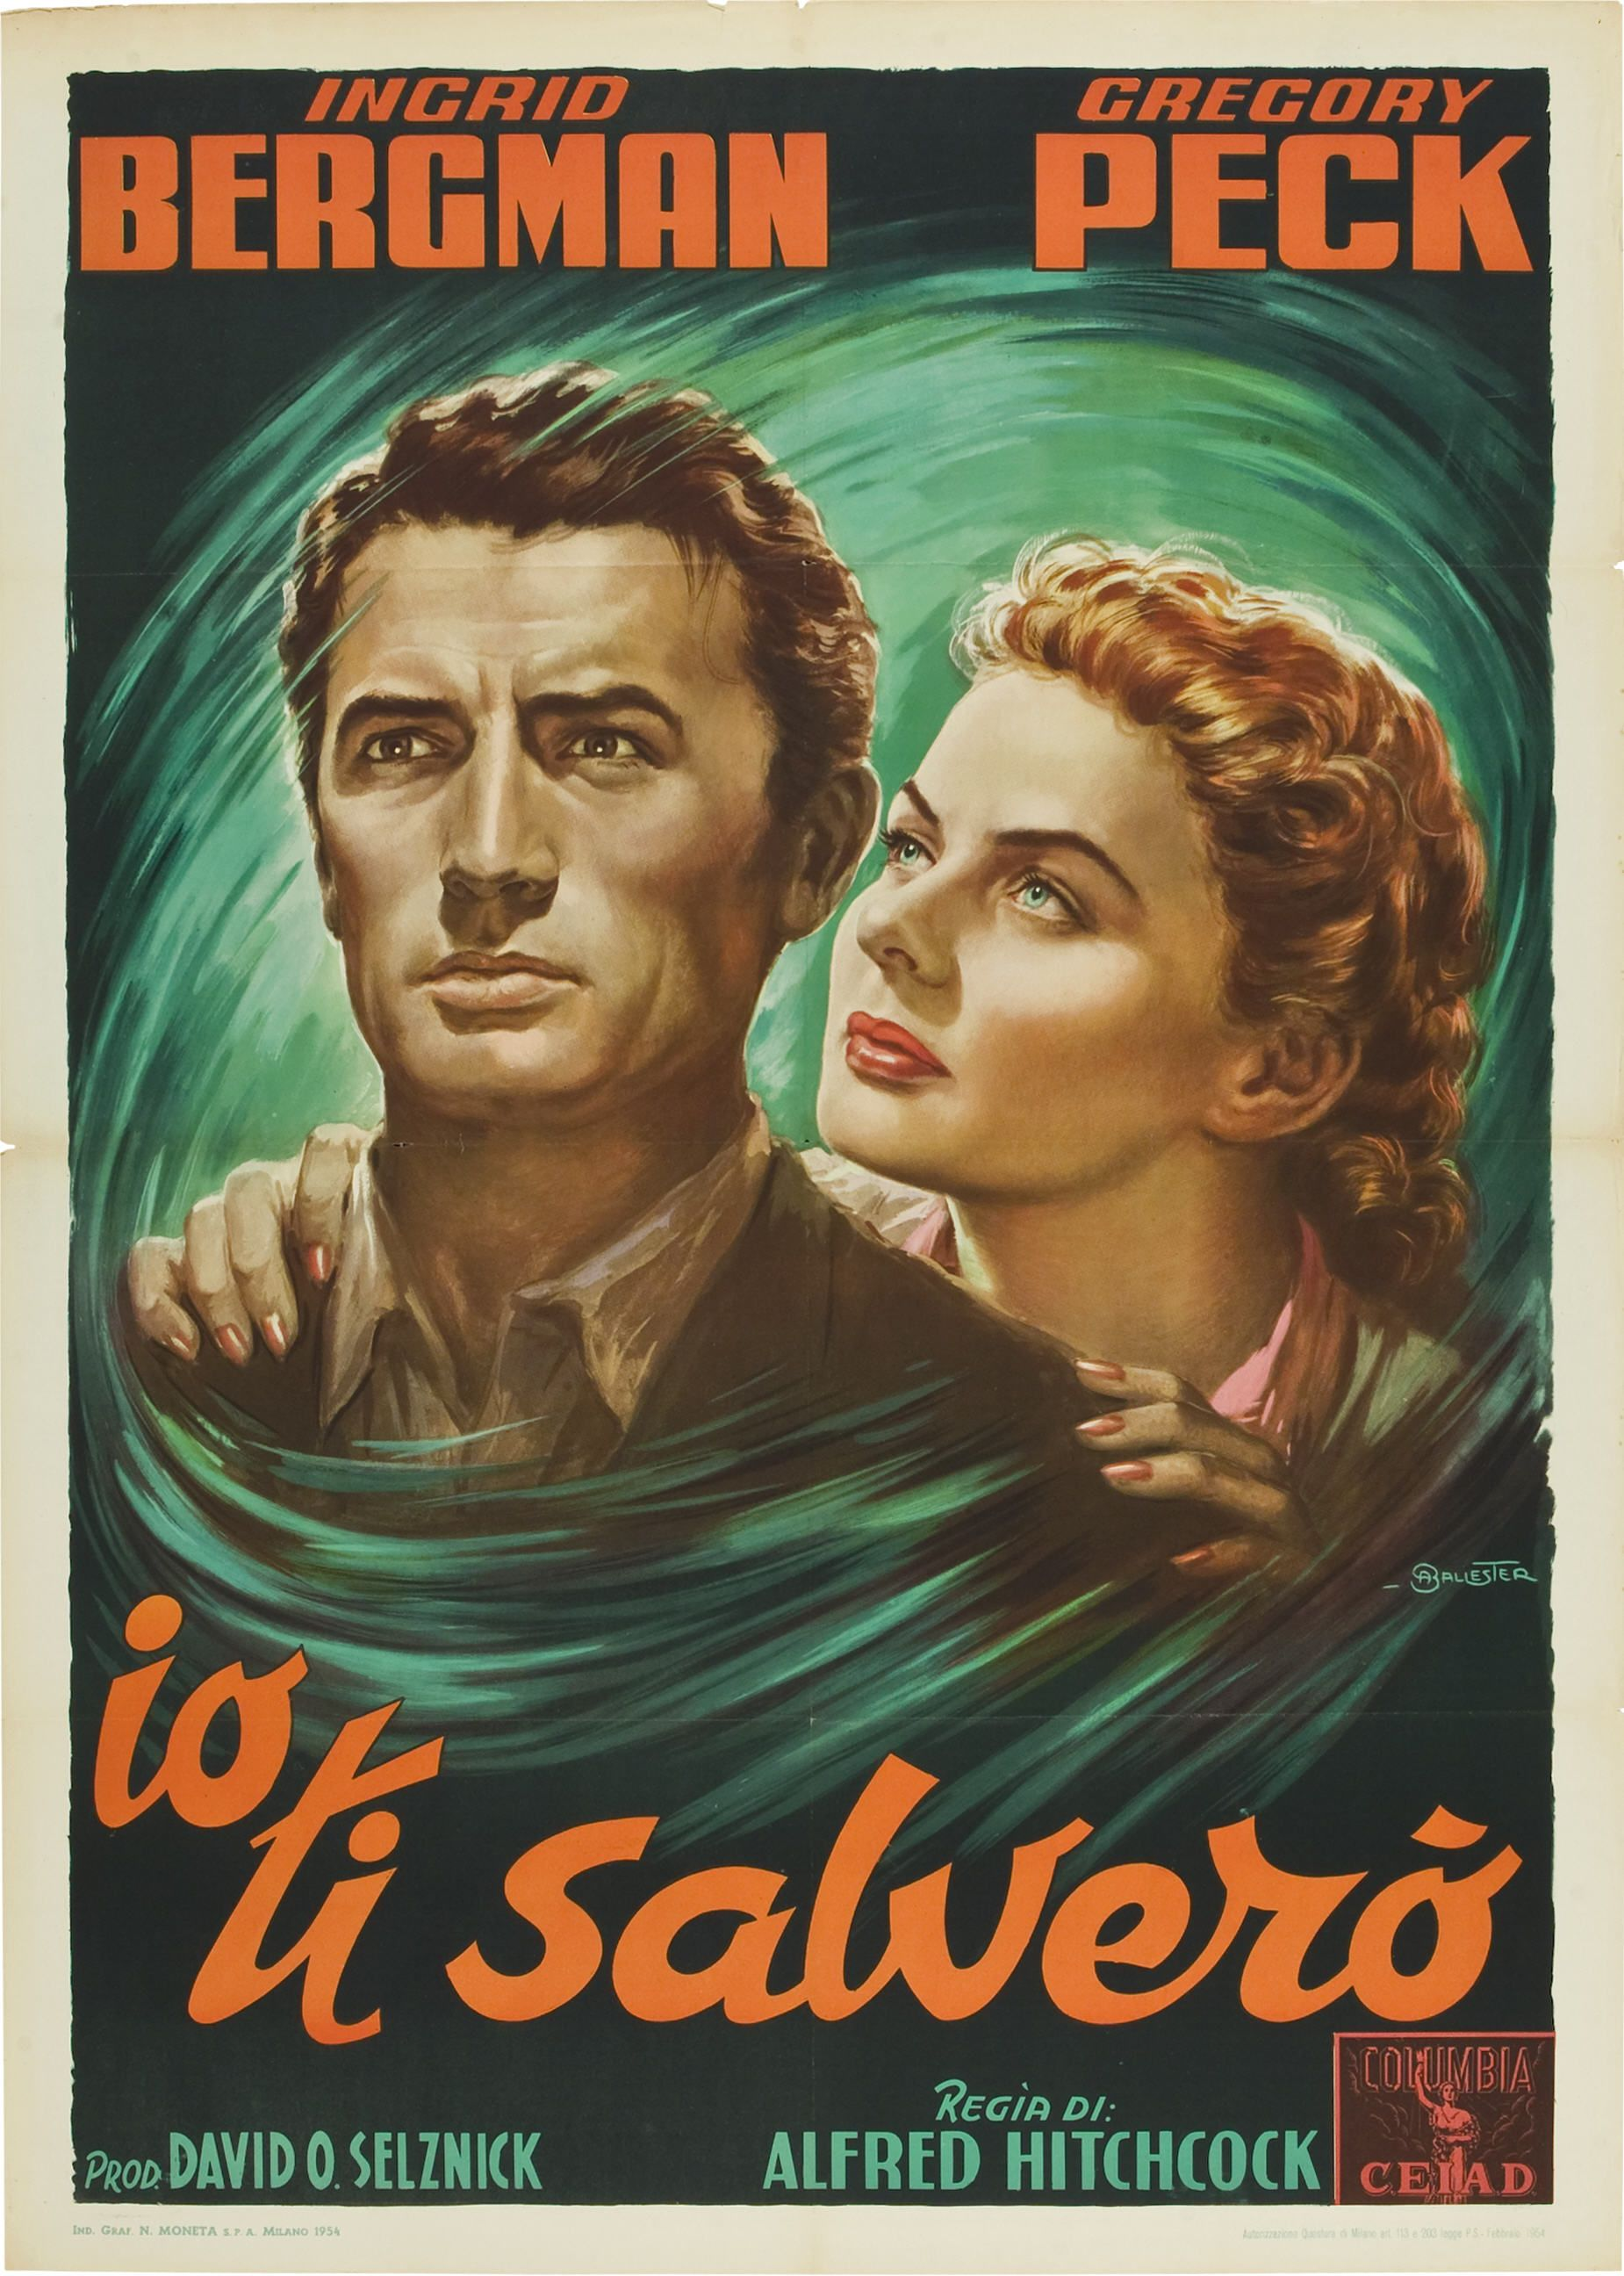 Ingrid Bergman & Gregory Peck - Spellbound (Alfred Hitchcock,1954) Italian  2-foglio design by Anselmo Ballester